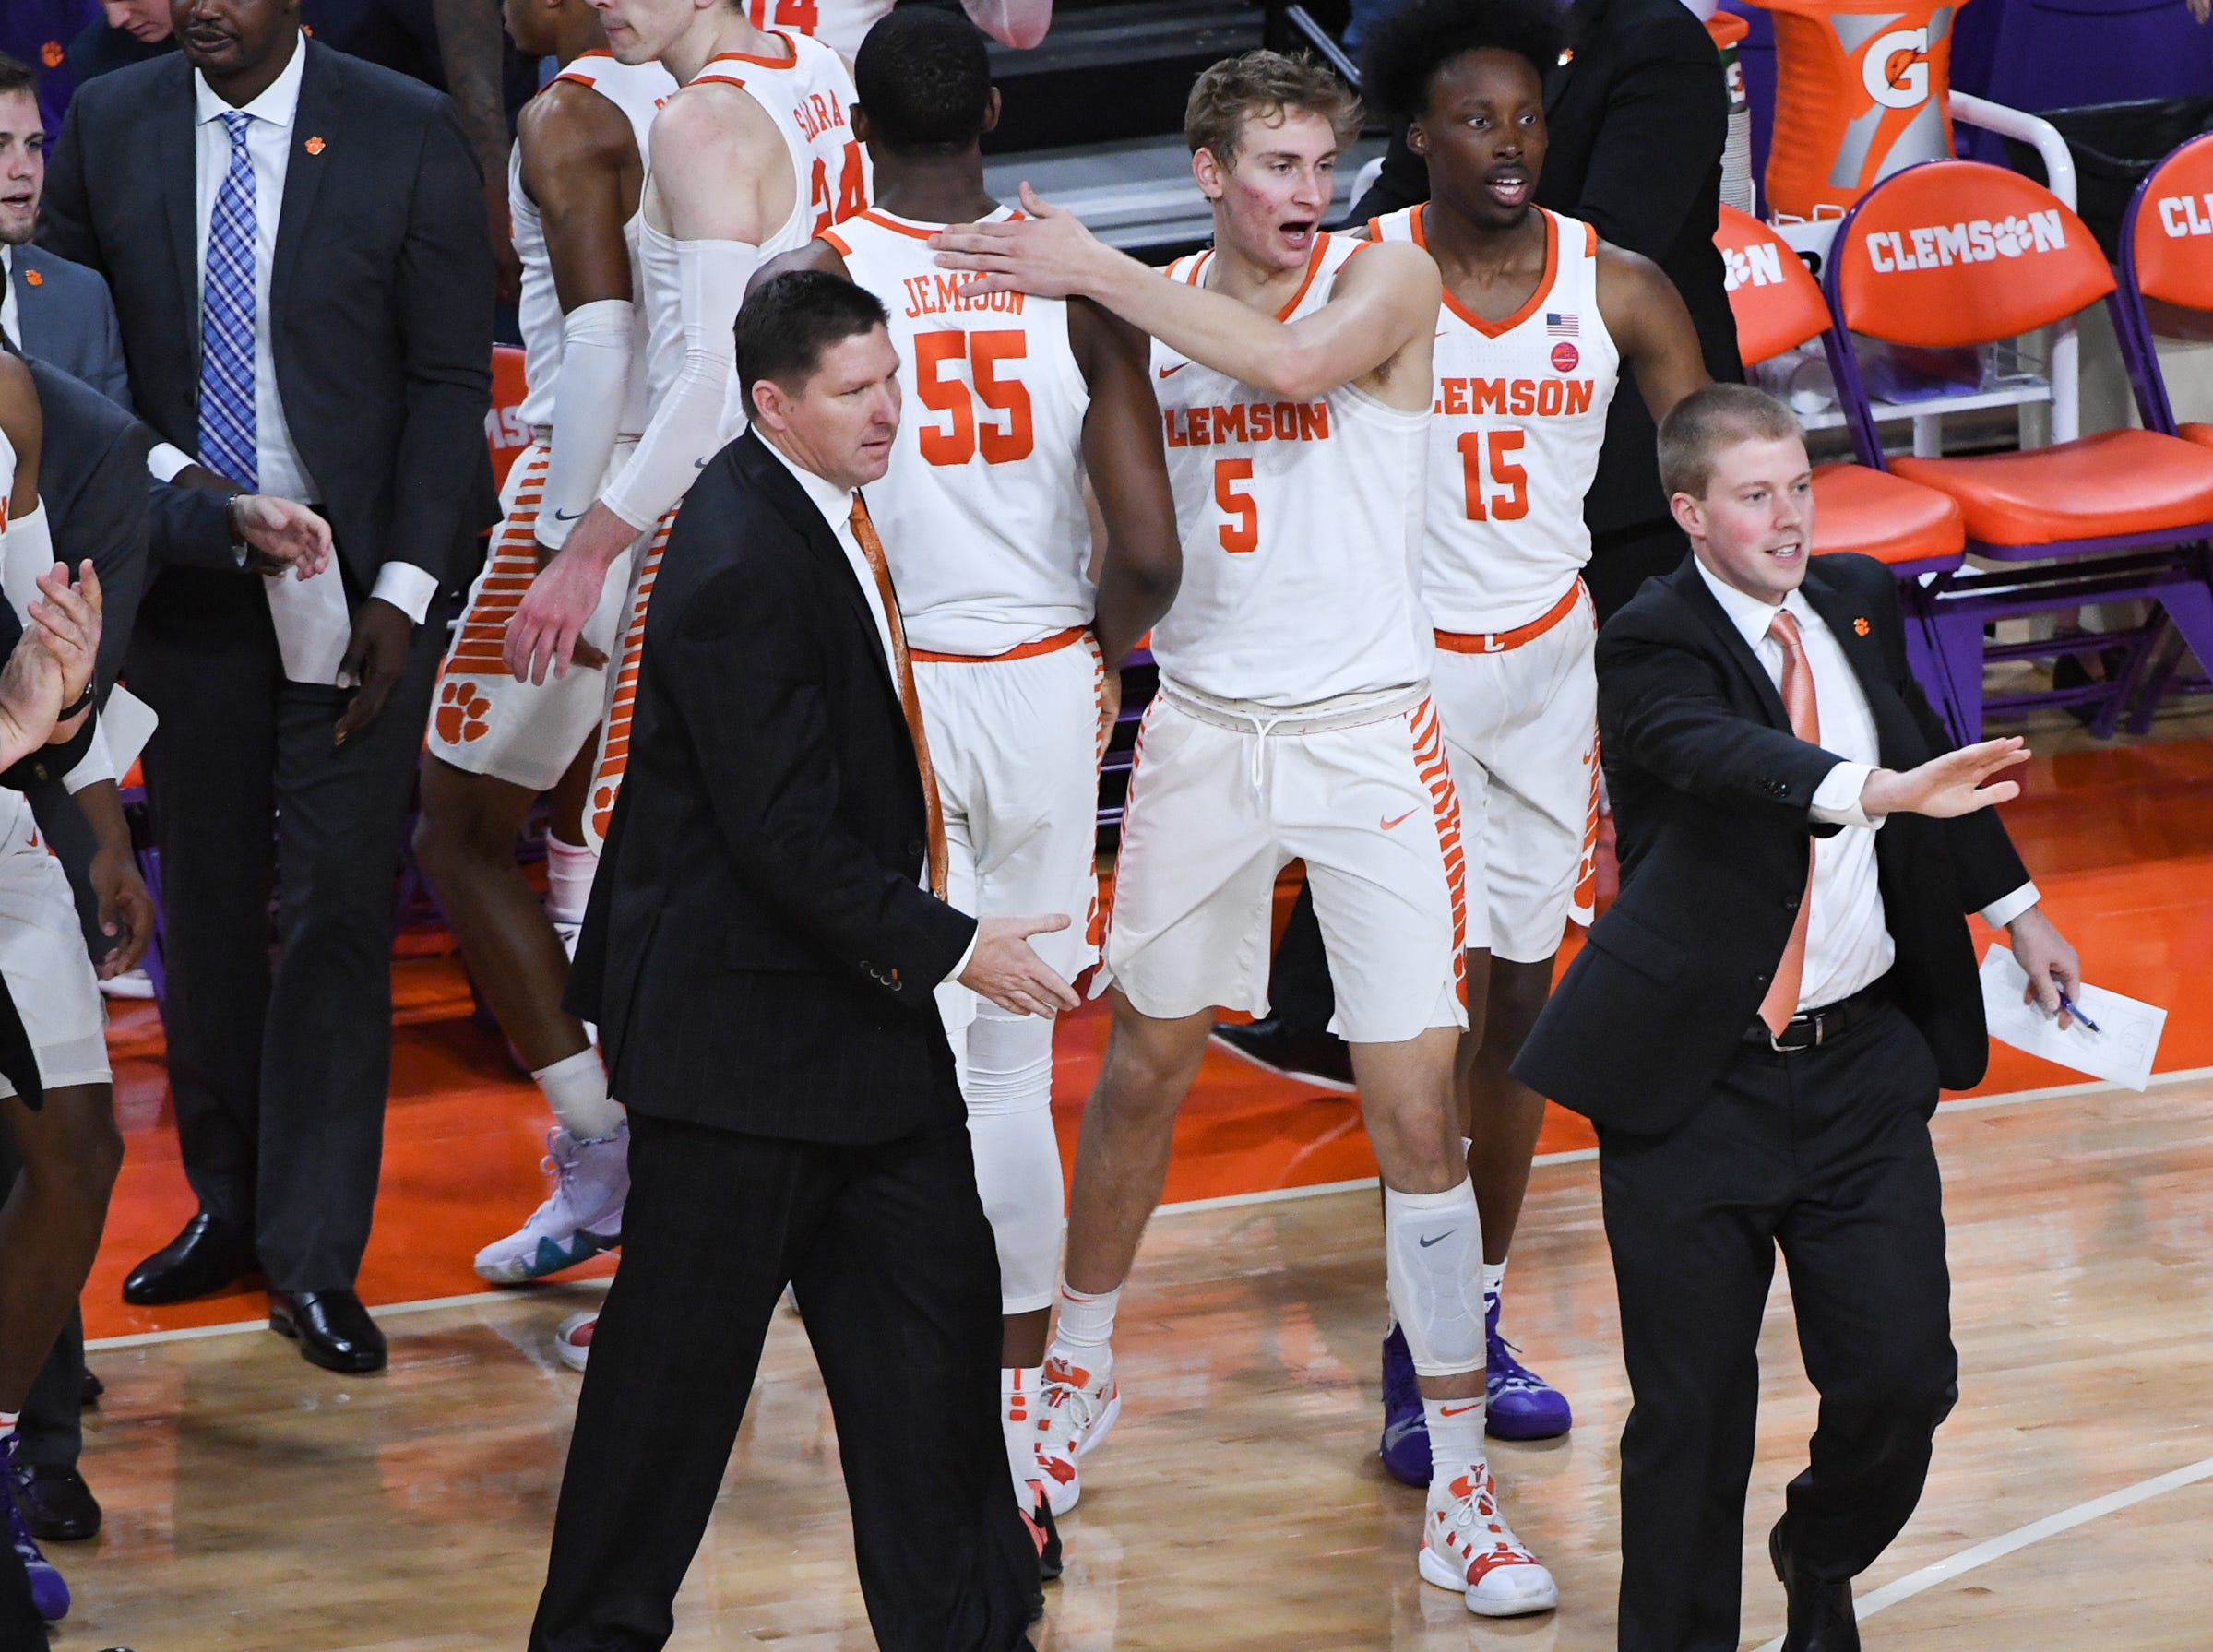 Clemson head coach Brad Brownell calls for a timeout against Florida State during the first half at Littlejohn Coliseum in Clemson Tuesday, February 19, 2019.